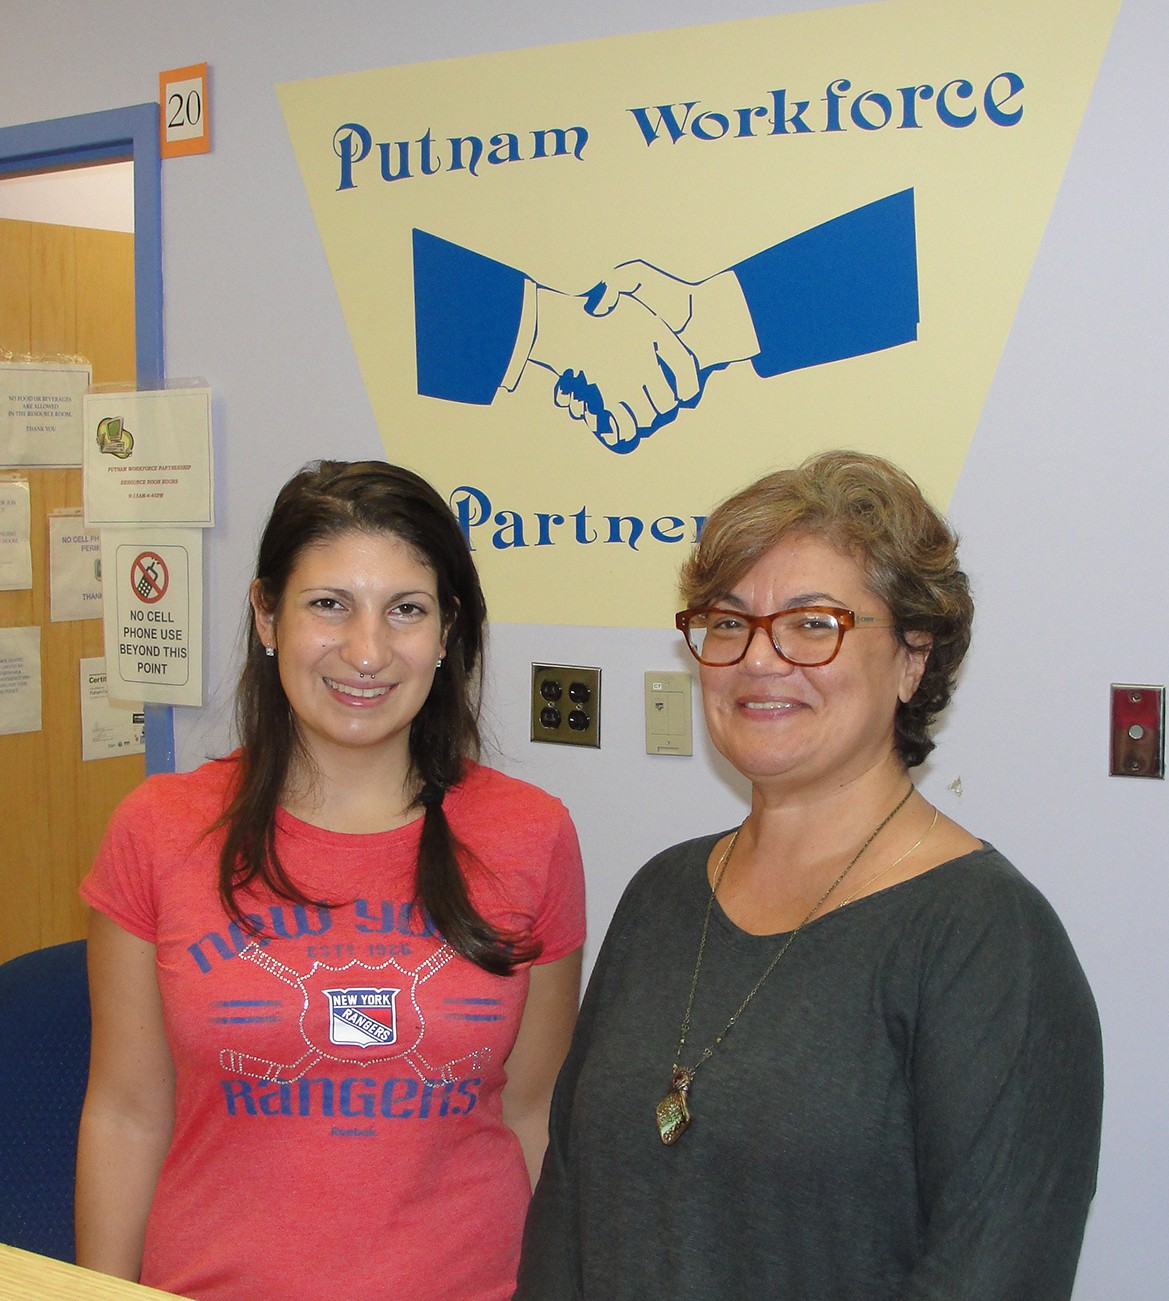 PUTNAM WORKFORCE